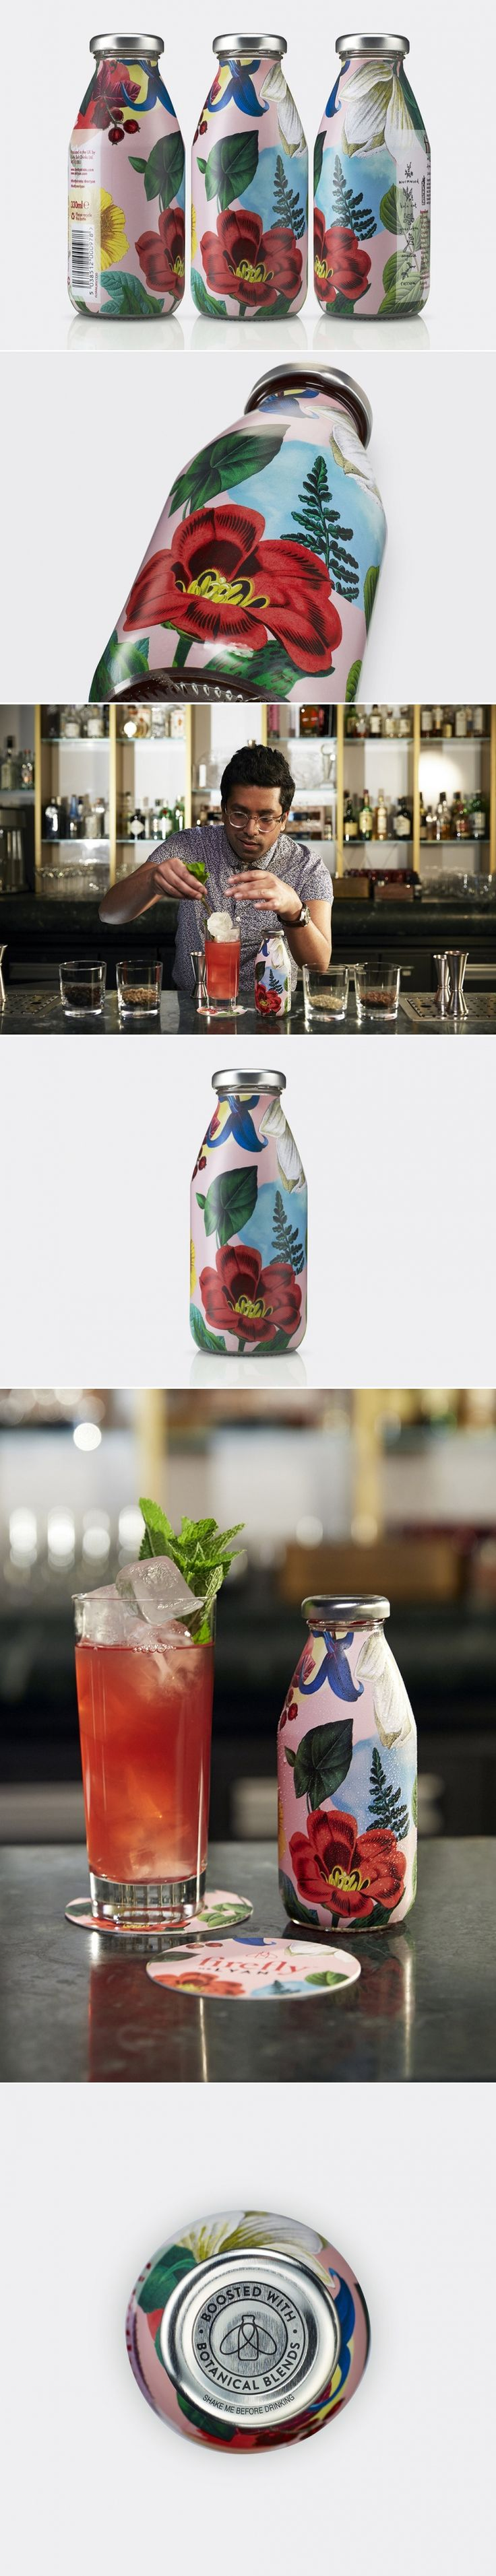 This Bottle Features Some Stunning Botanical Illustrations — The Dieline | Packaging & Branding Design & Innovation News